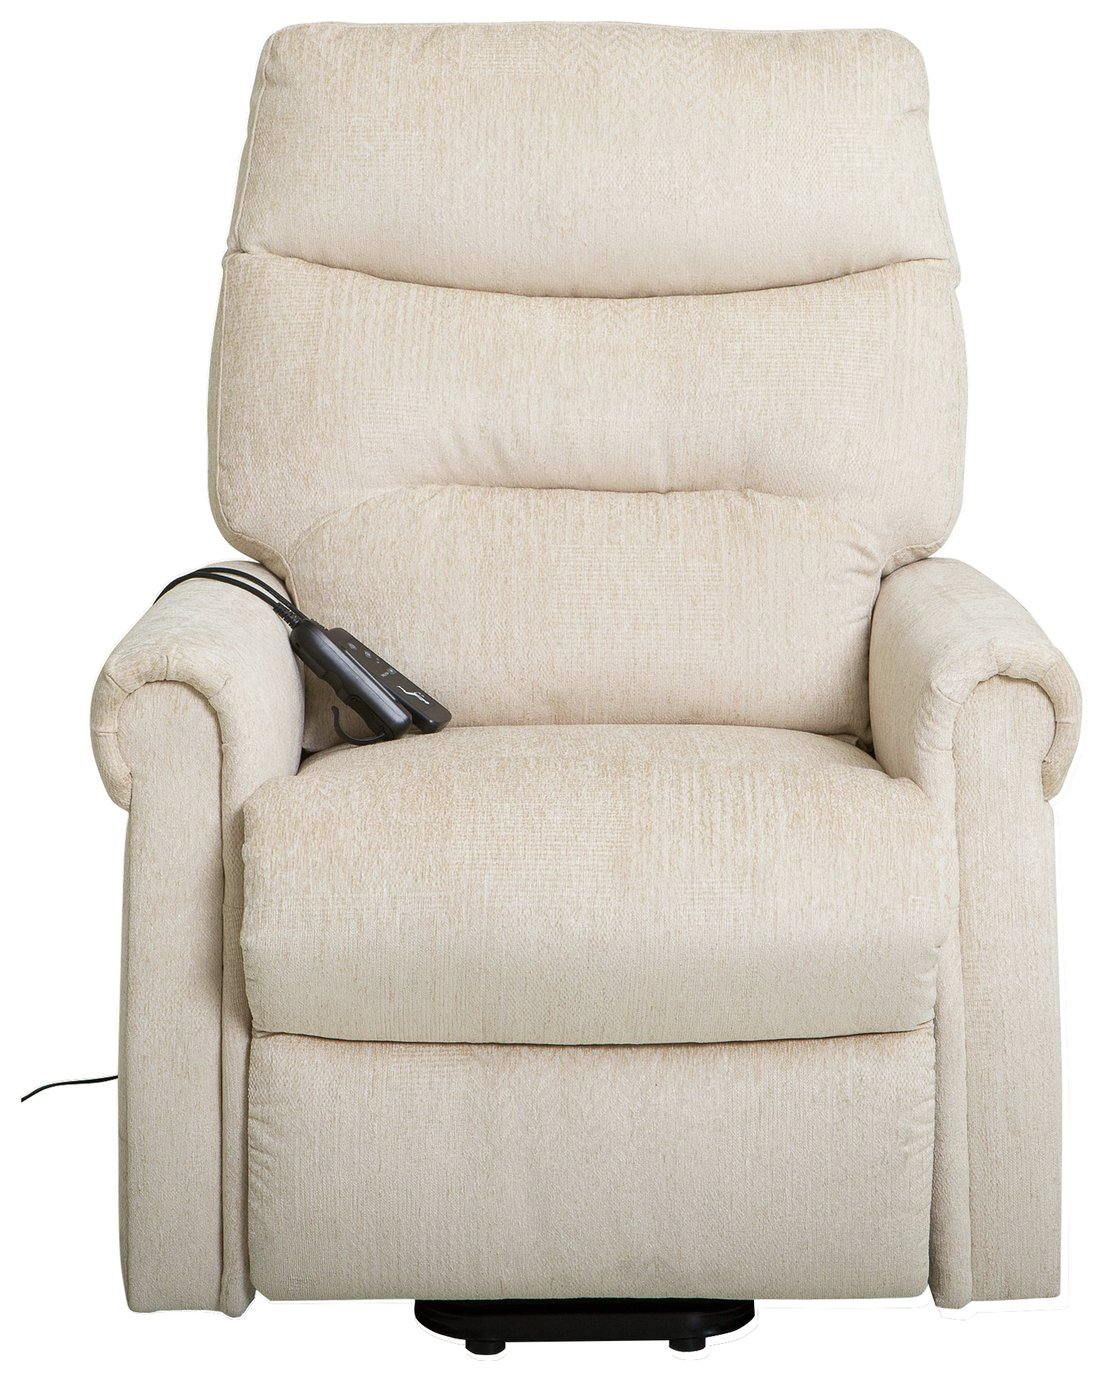 electric recliner chairs argos wood outdoor chair buy clarke riser heated biscuit armchairs and biscuit620 1614